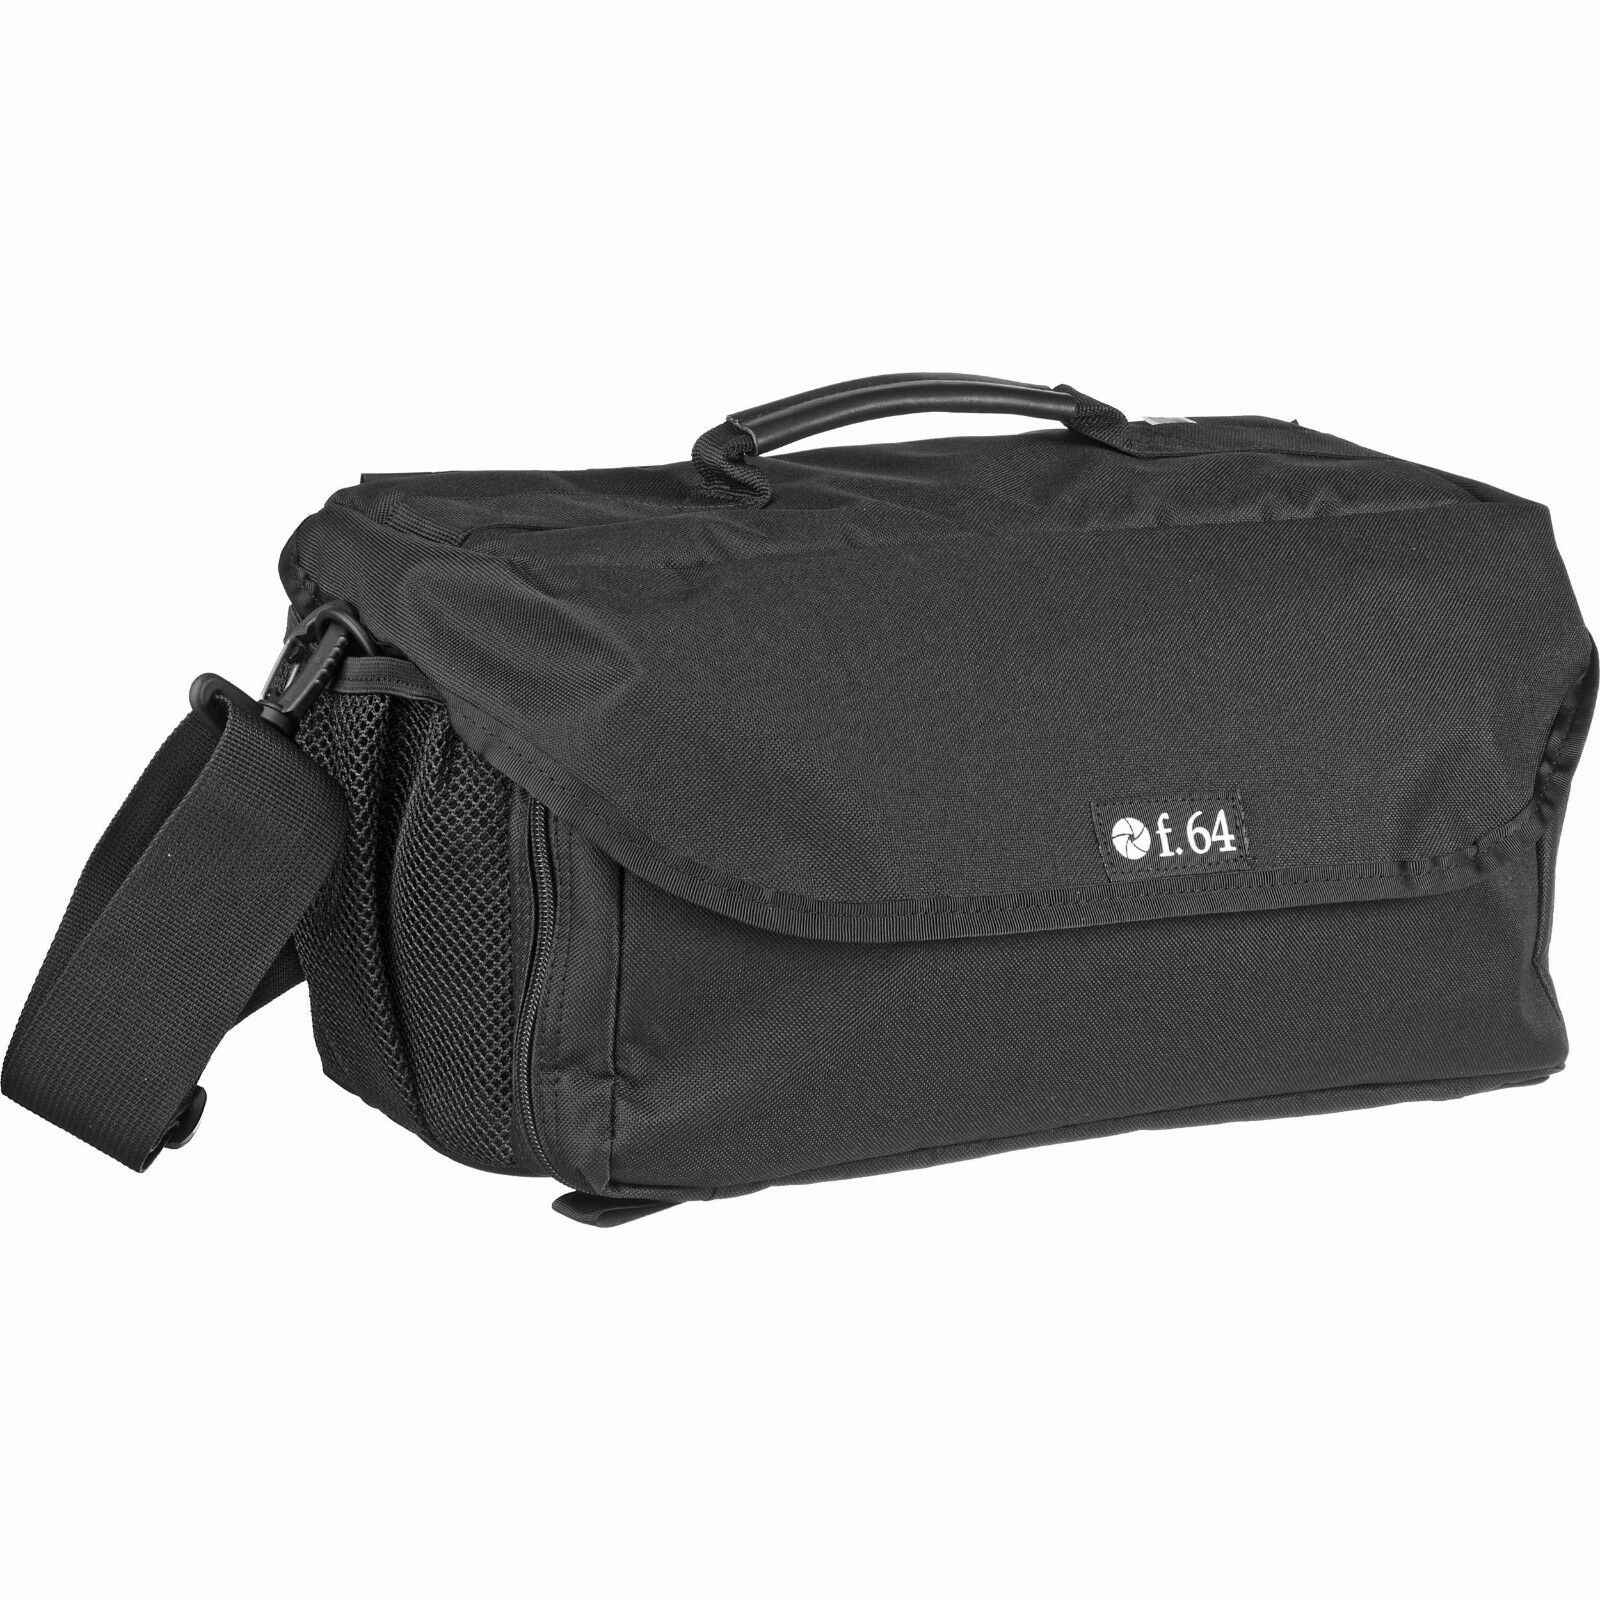 F.64 Camcorder Bag Large Video Camera Case Shoulder Hip Pack